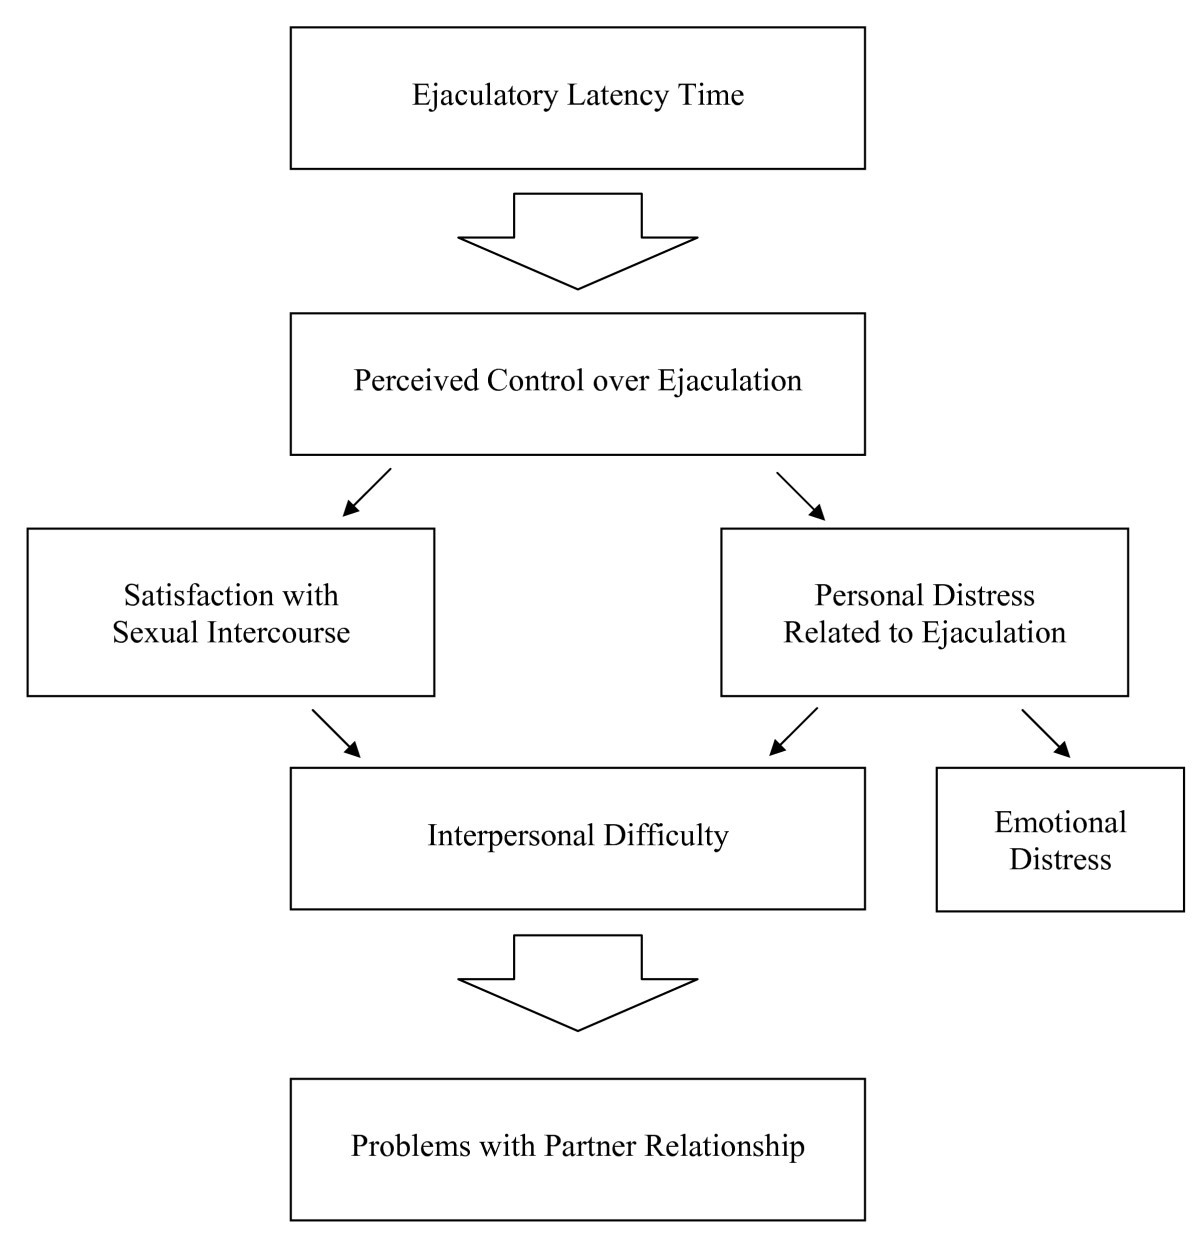 Characterizing The Burden Of Premature Ejaculation From A Patient